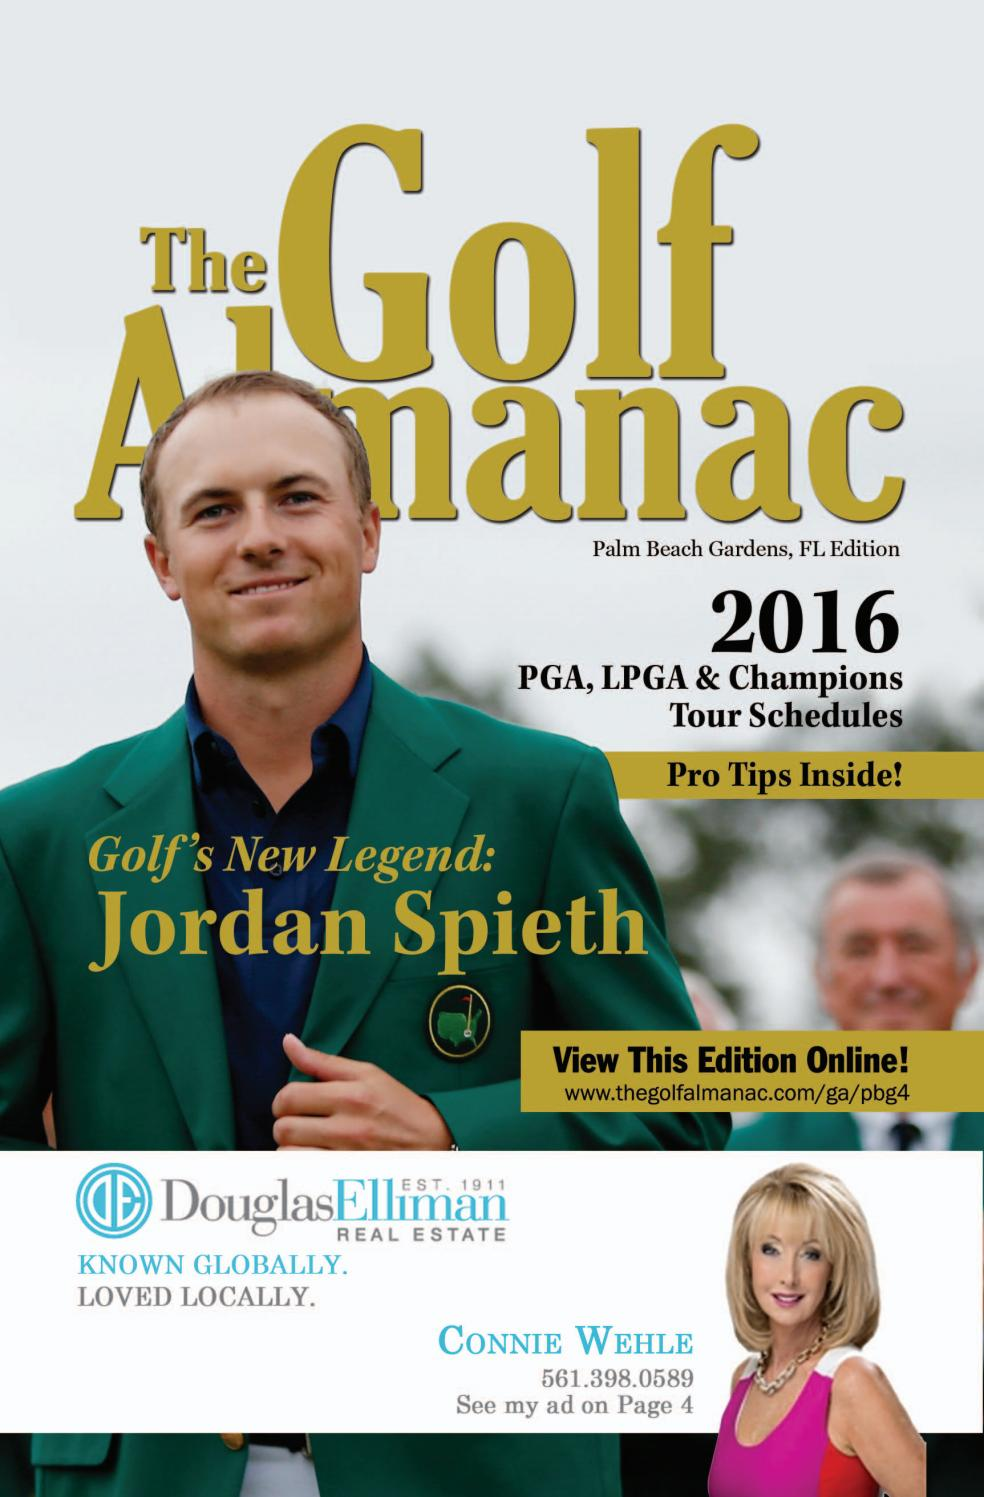 Palm Beach Gardens, FL - 4th Edition by The Golf Almanac - issuu